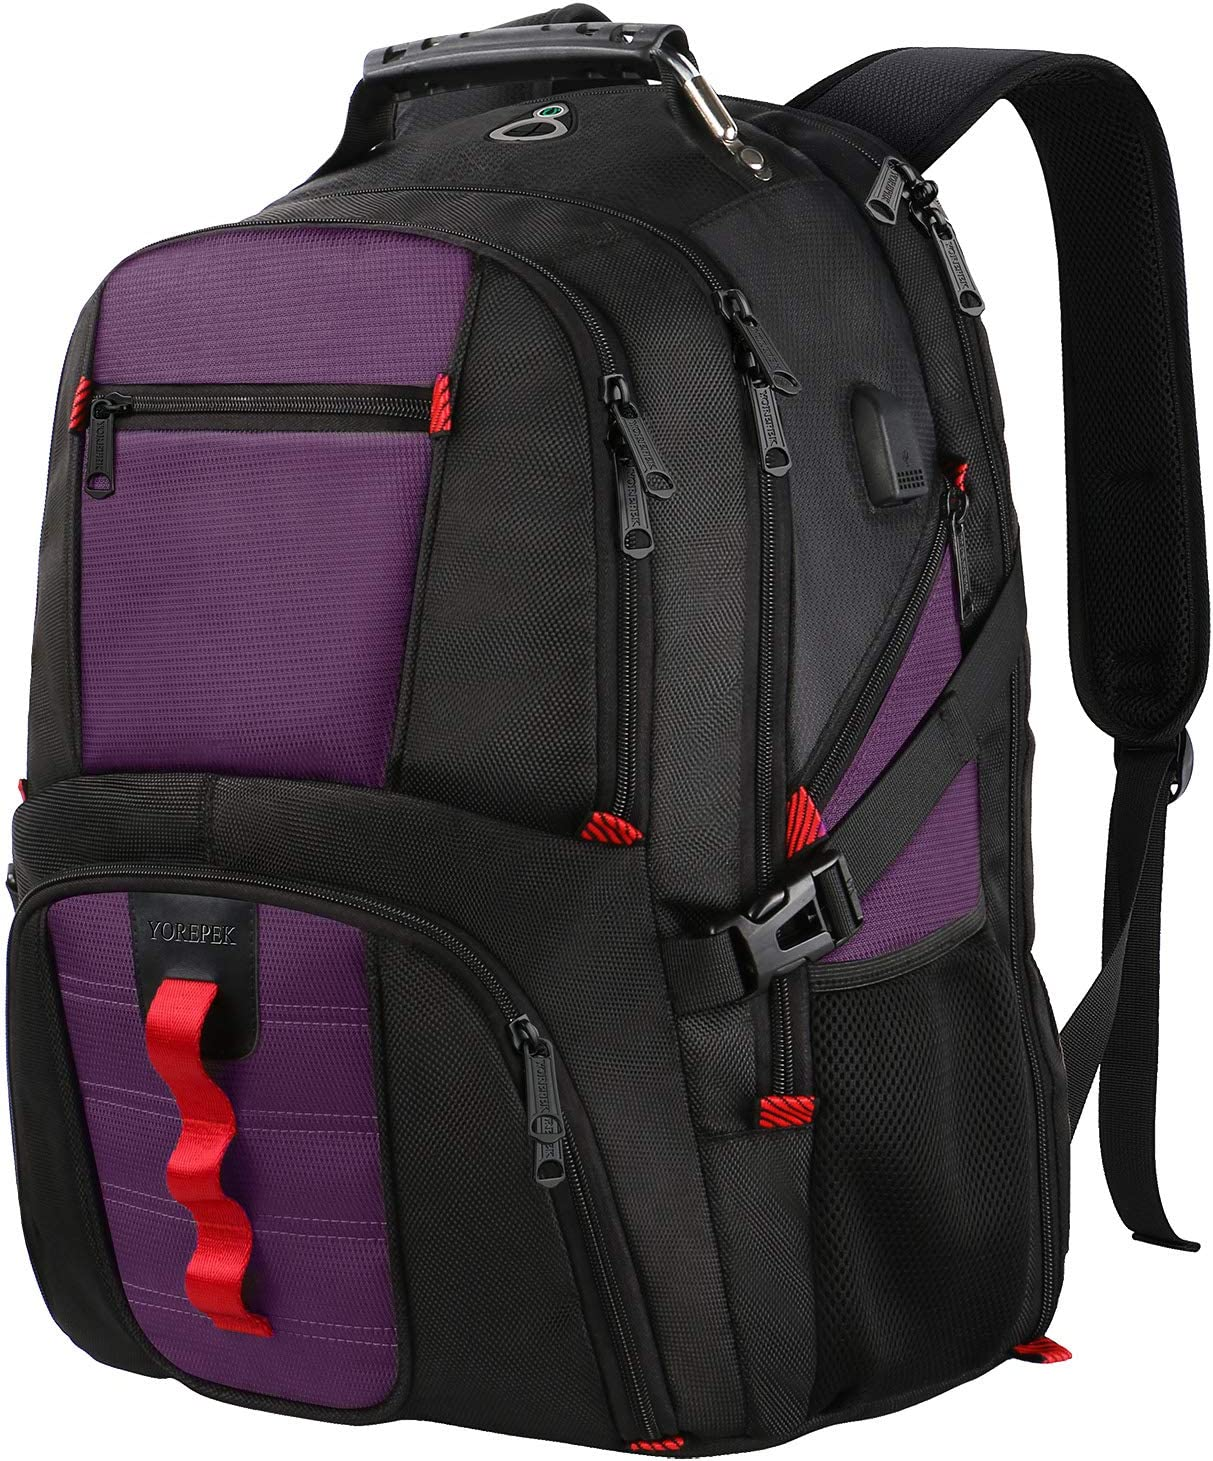 Extra Large Backpack,TSA Friendly Travel Laptop Backpack for Men Women with USB Charging Port,Business College Backpack Fits 17 Inch Notebooks,Purple